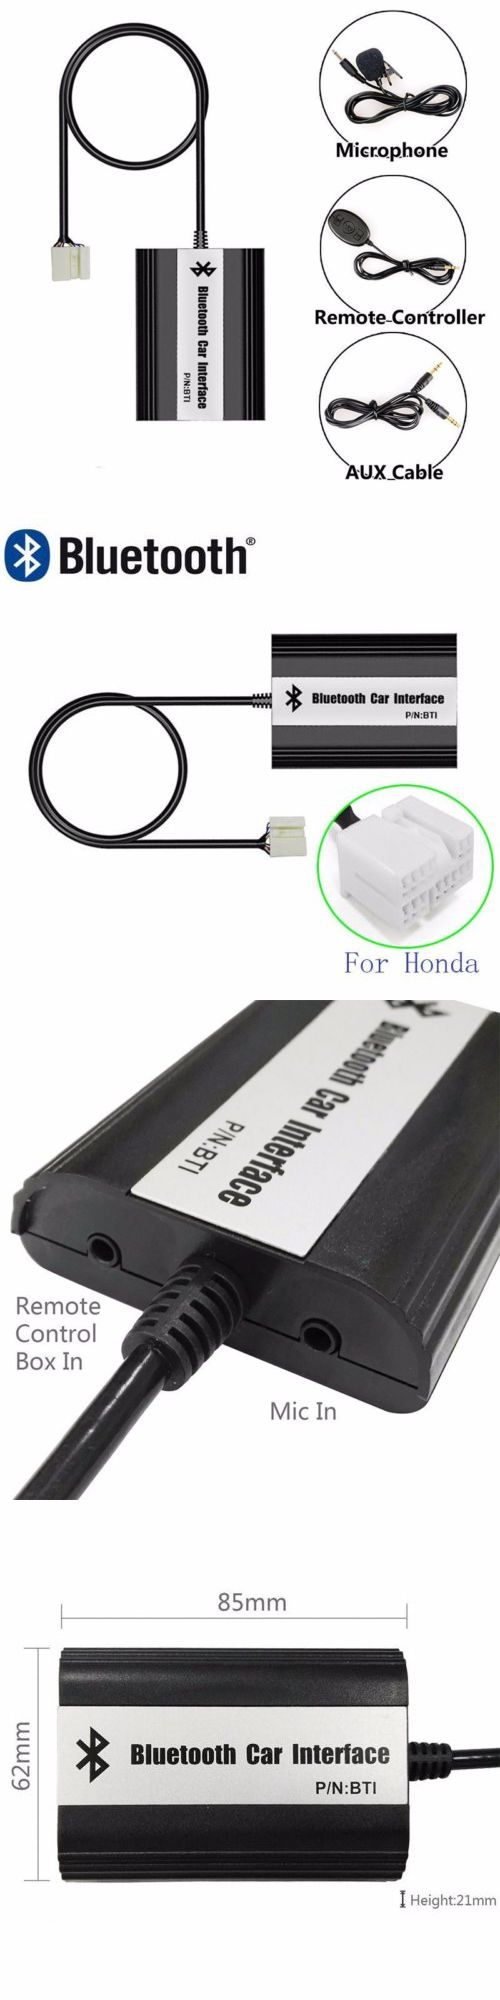 Bluetooth Handsfree Car Kits: Car Bluetooth Mp3 Music Adapter For Honda Accord 2003-2011 Civic 2006-2010 Crv -> BUY IT NOW ONLY: $44.69 on eBay!